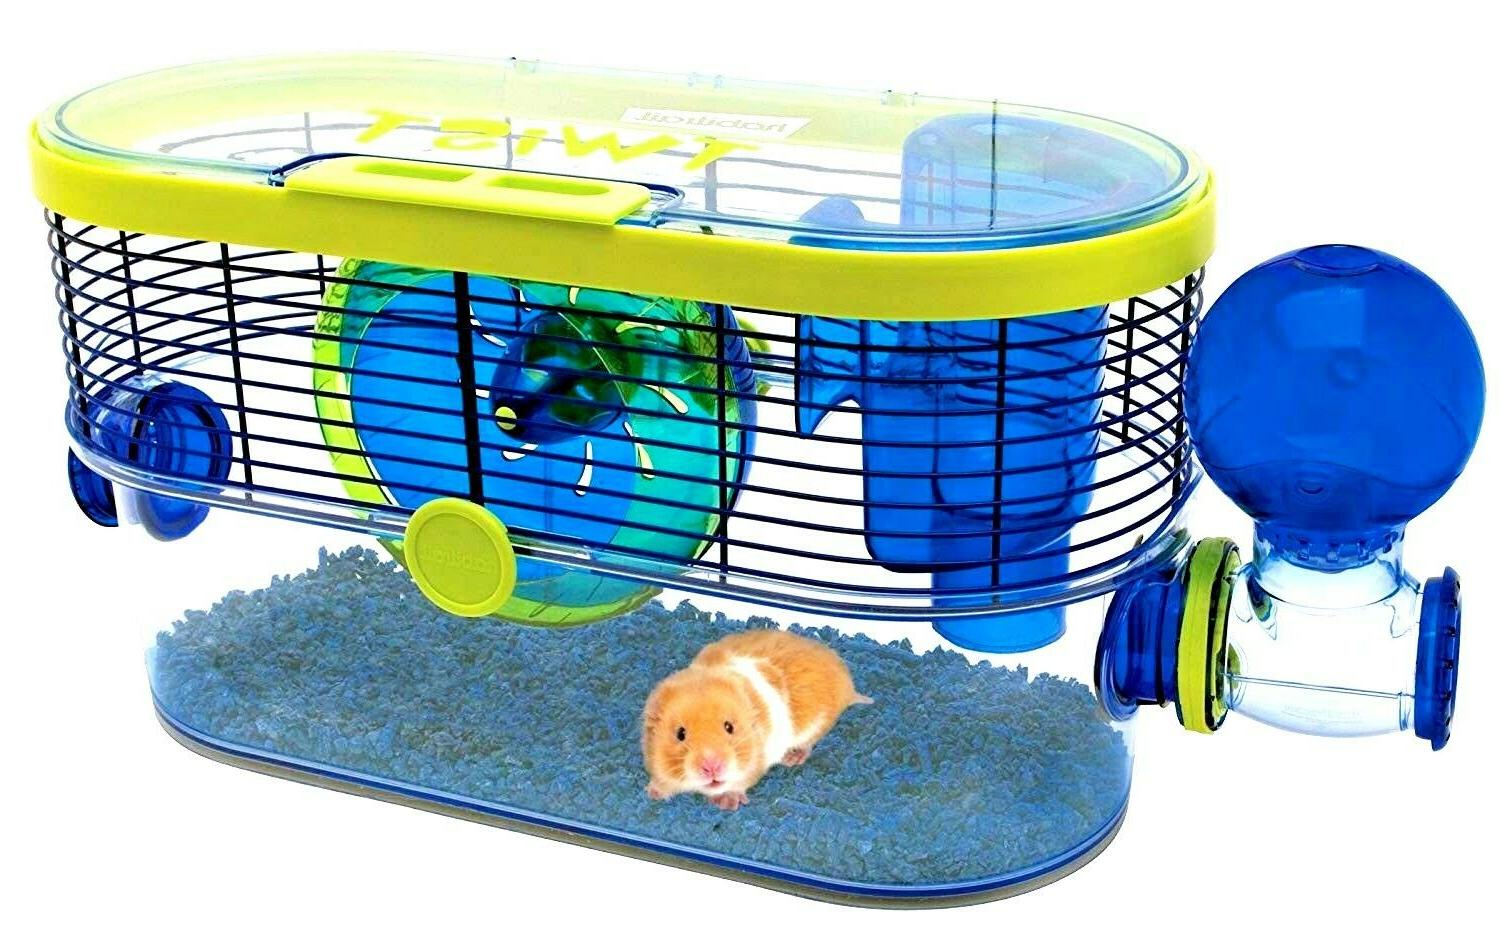 twist for hamster free two days shipping